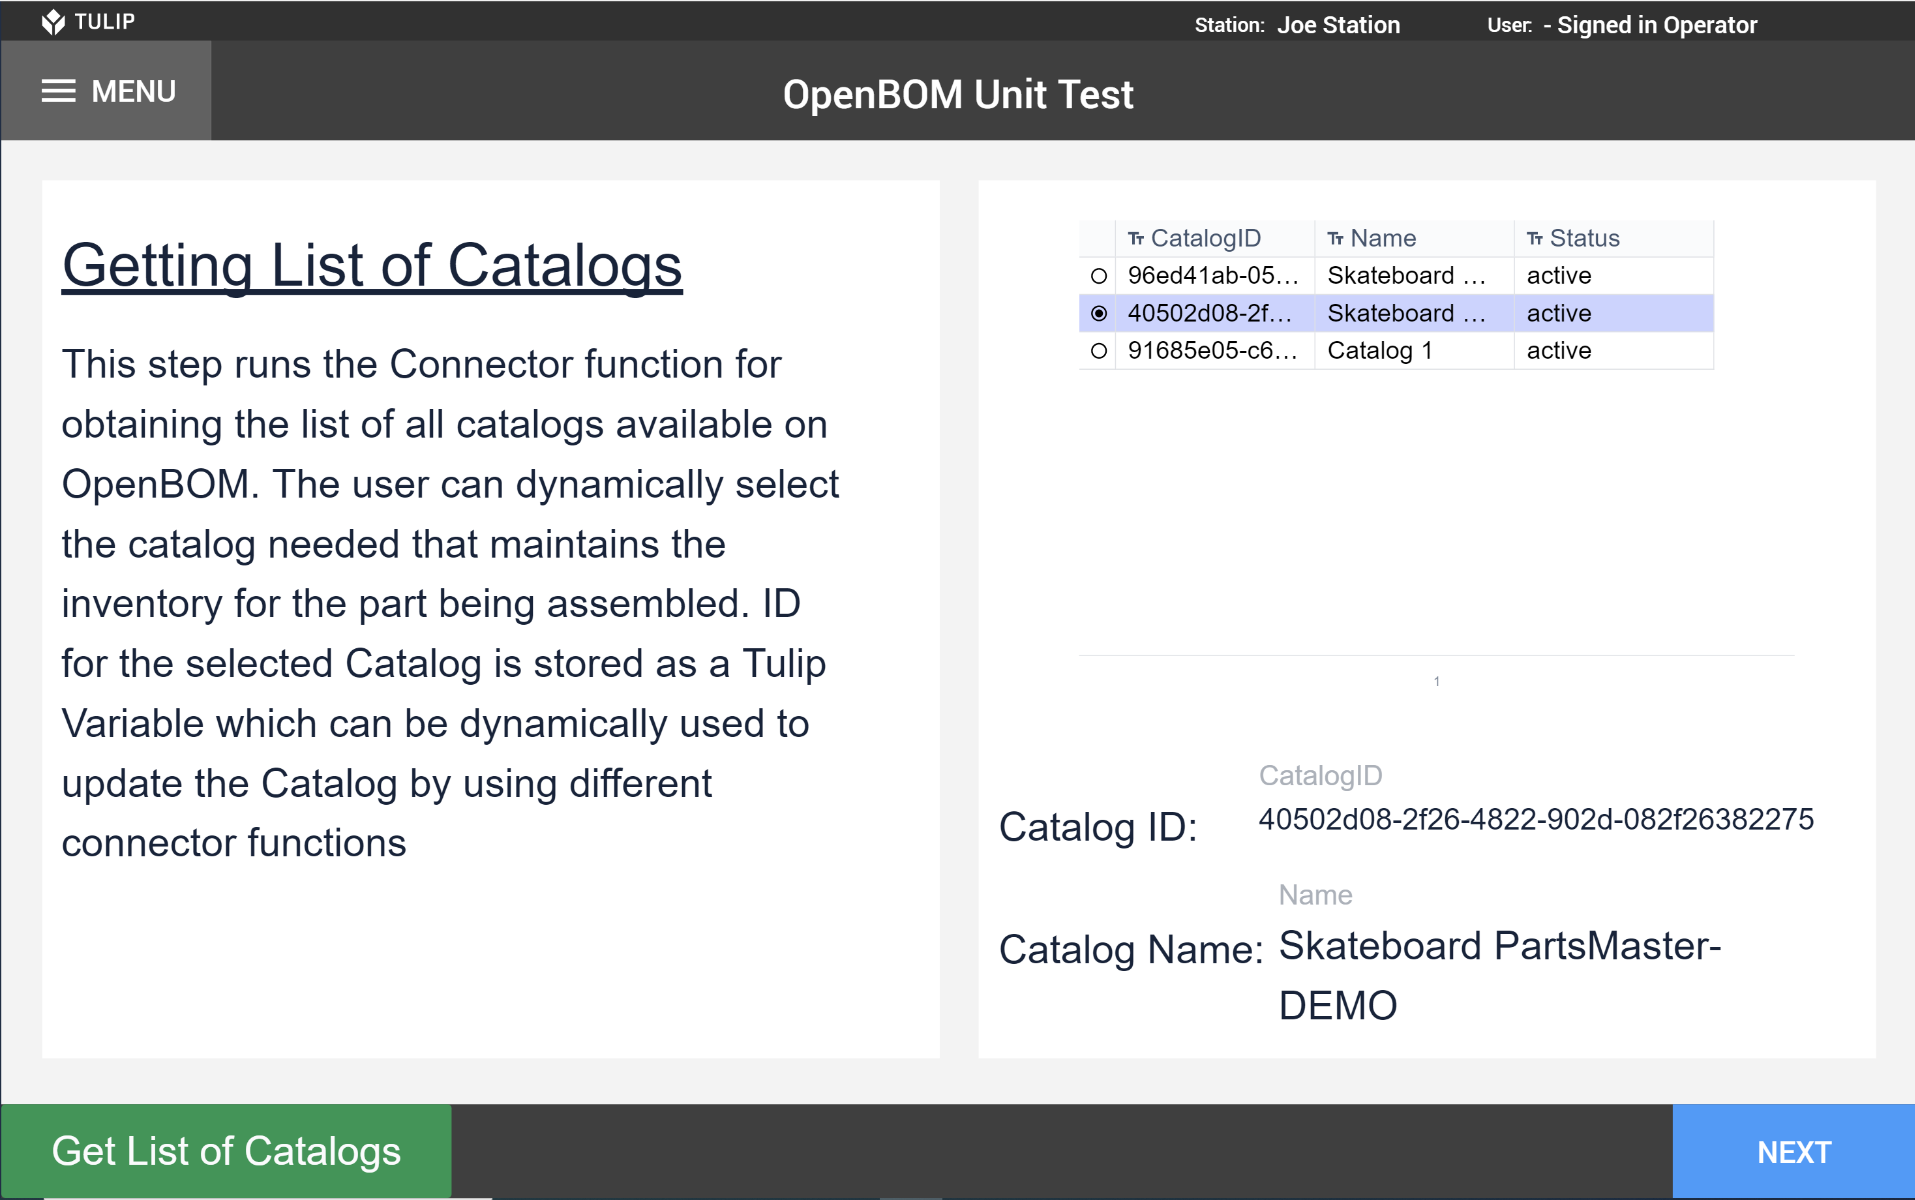 Image of OpenBOM Unit Test app